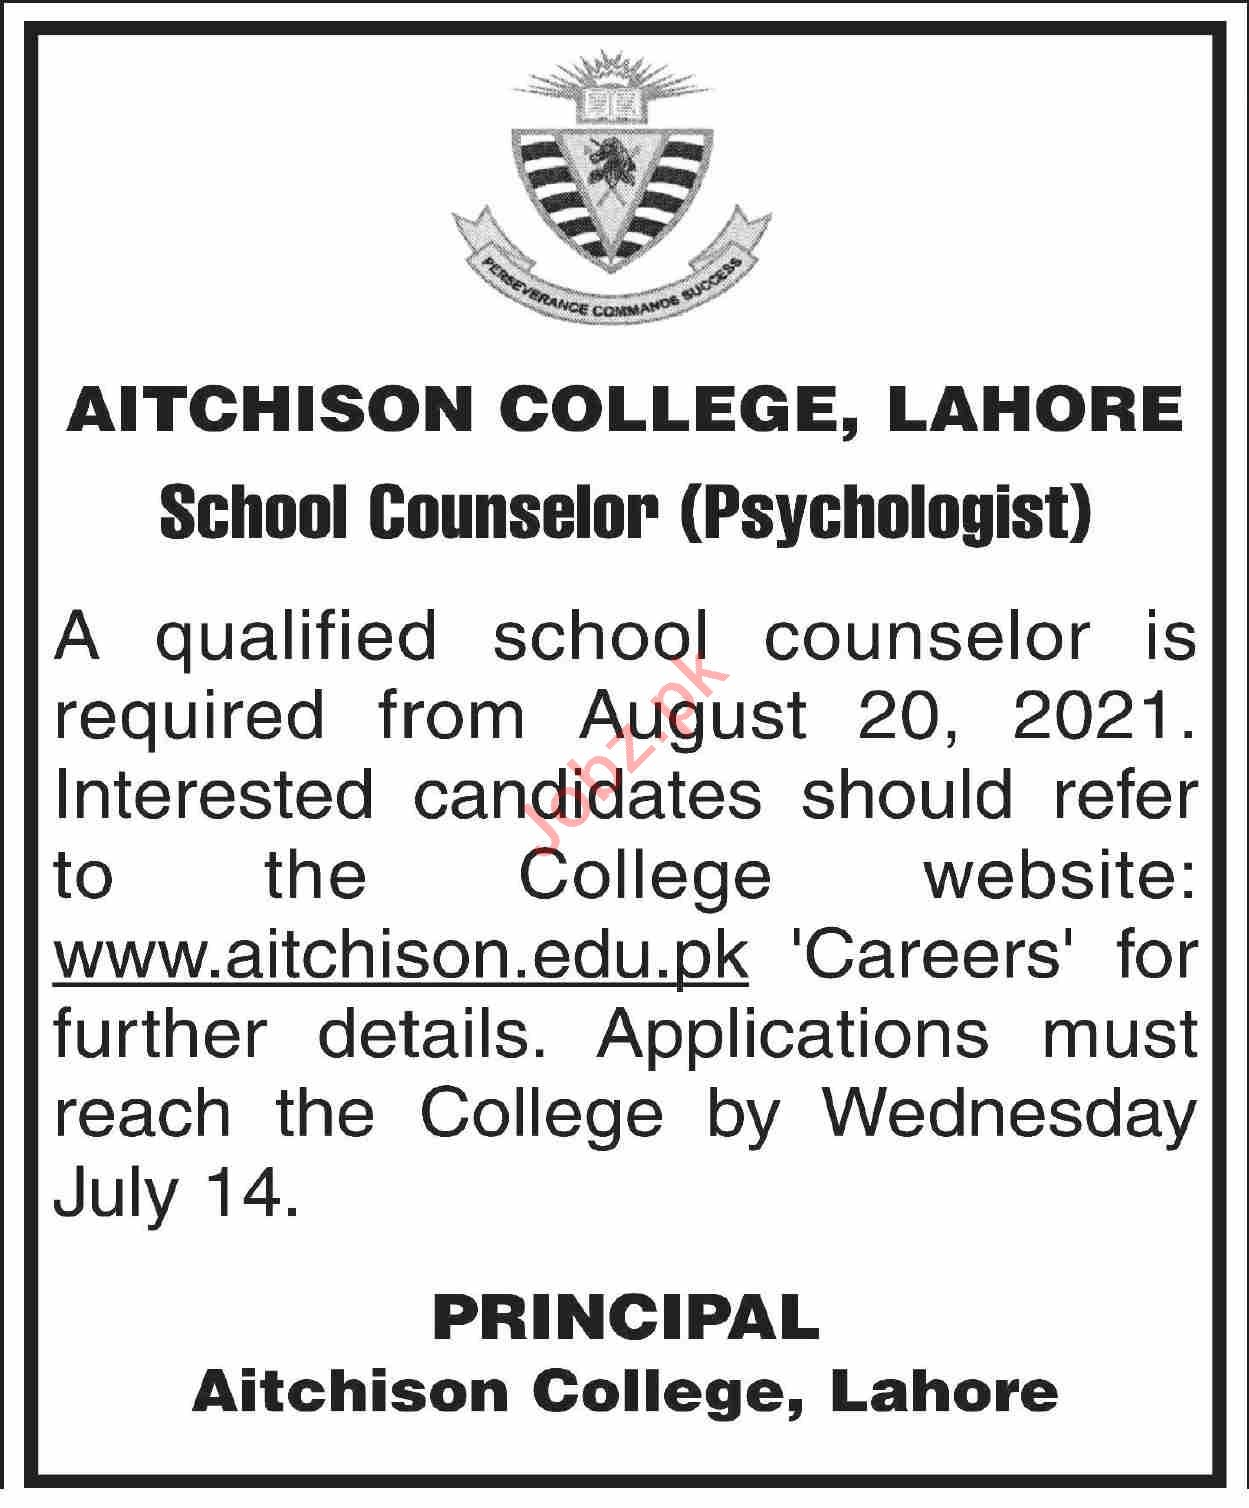 Aitchison College Lahore Jobs 2021 for School Counselor